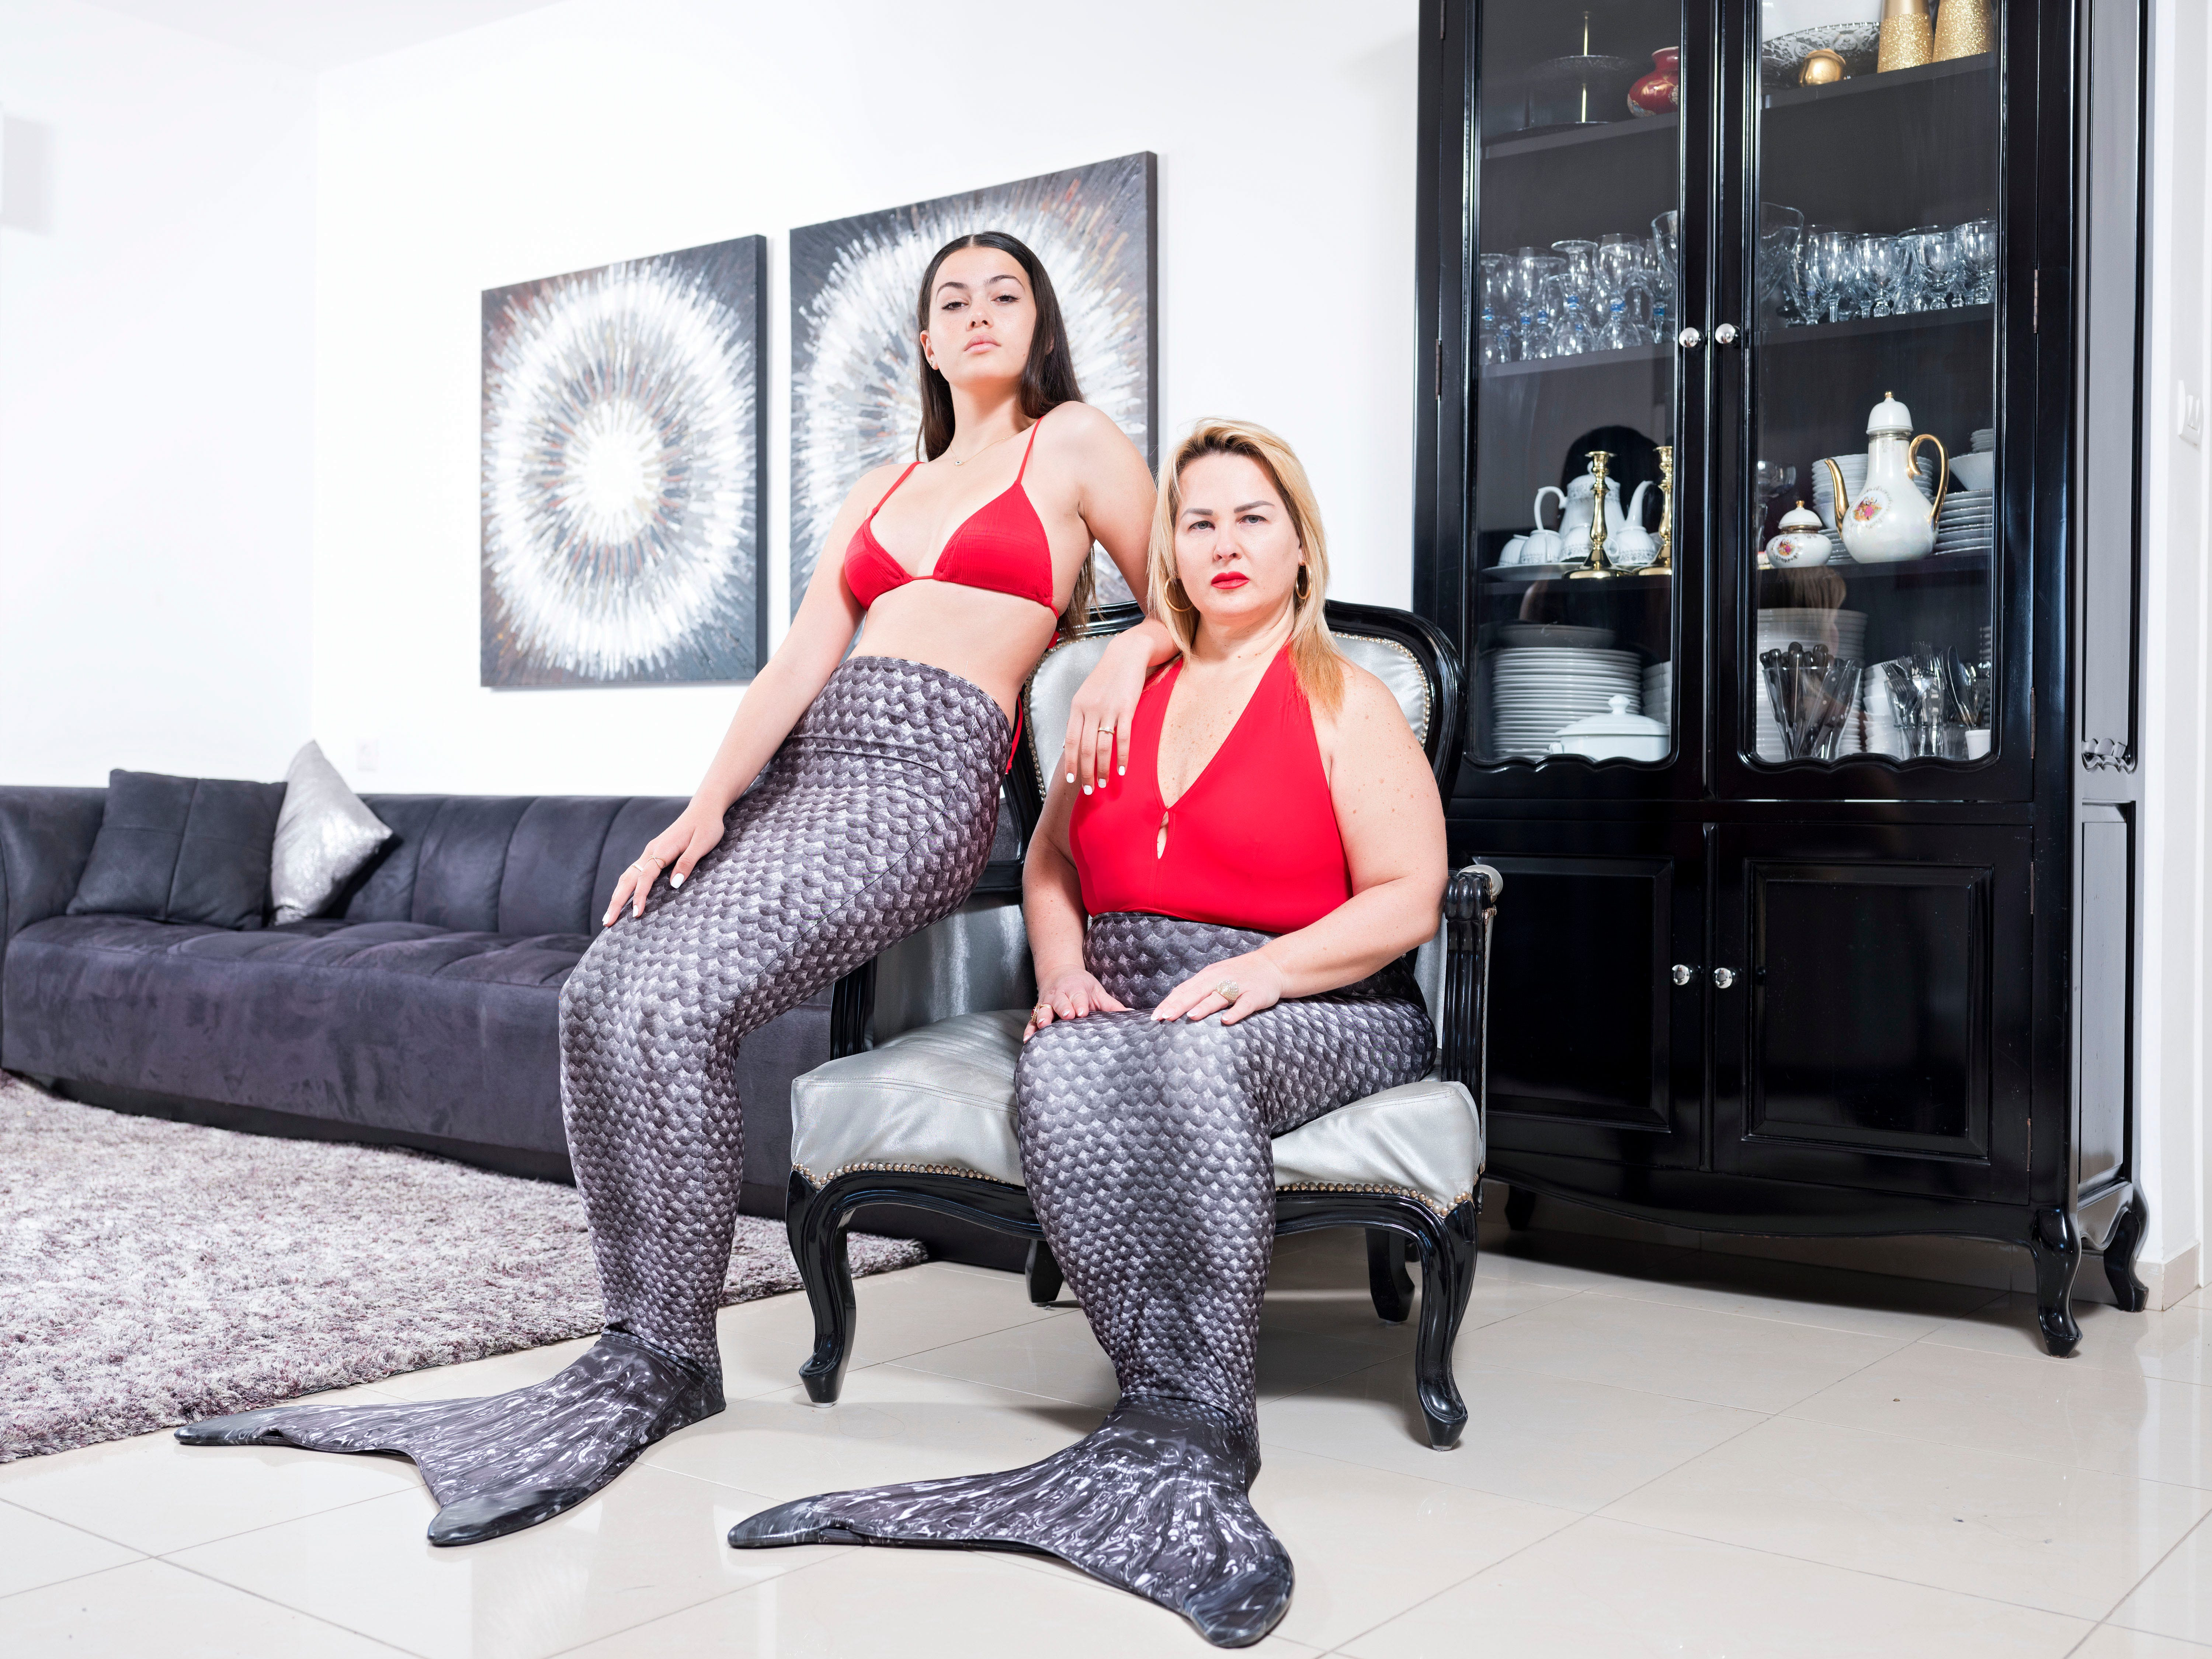 In this Wednesday, March. 6, 2019 photo, Limor Kahlon, right, and her daughter Yam, members of the Israeli Mermaid Community, pose for a portrait as they wear mermaid tails at their home in Netanya, Israel.